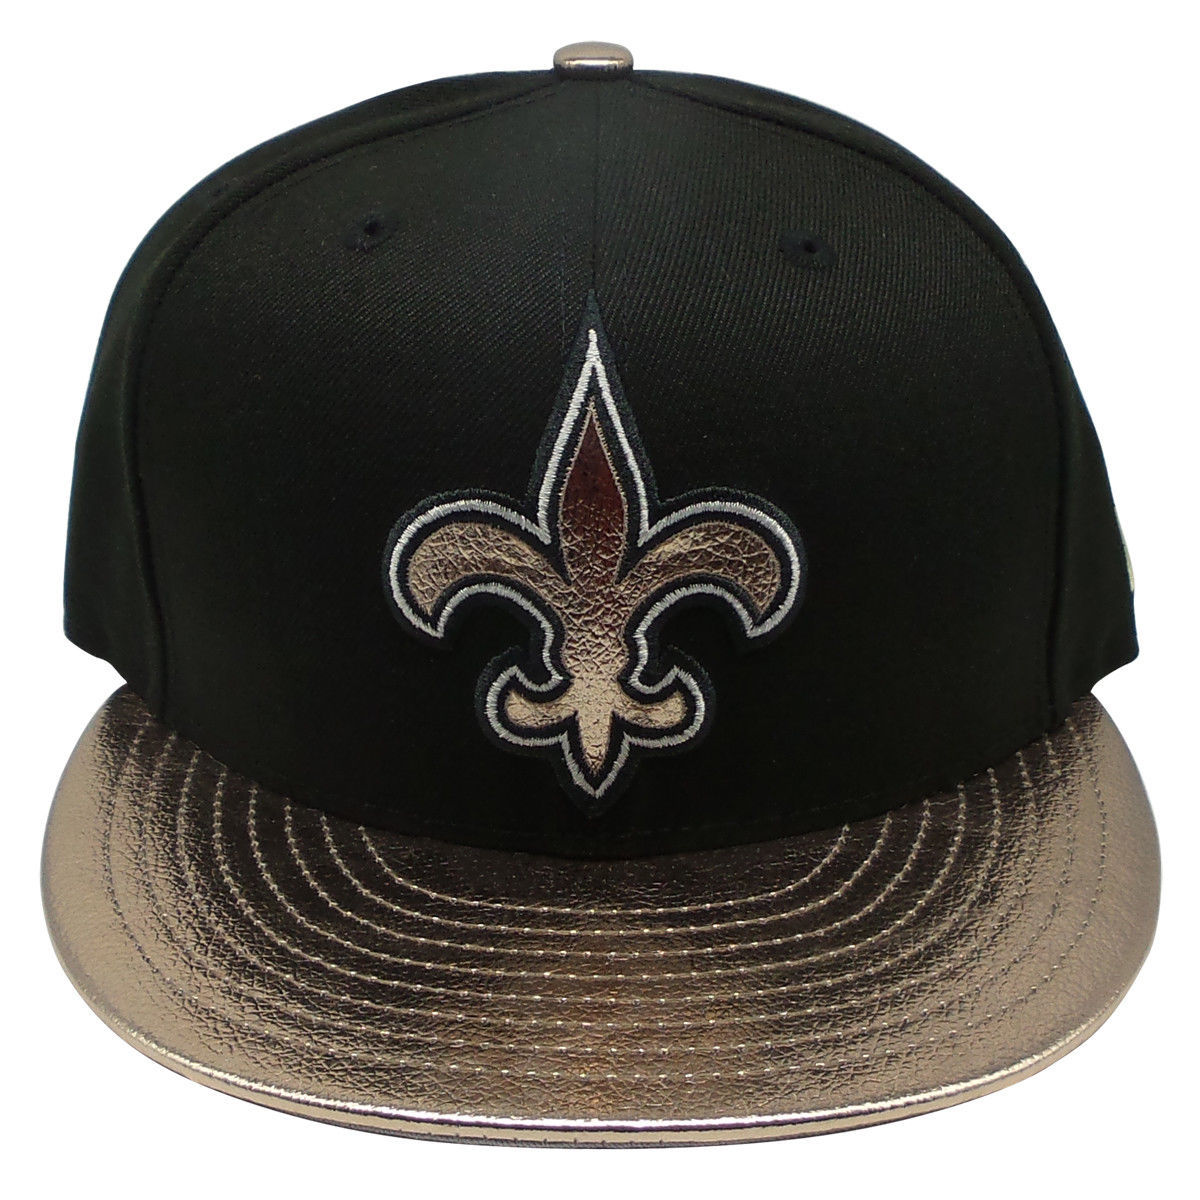 New Era 9FIFTY NFL Headwear New Orleans and 50 similar items 835ba380bcd